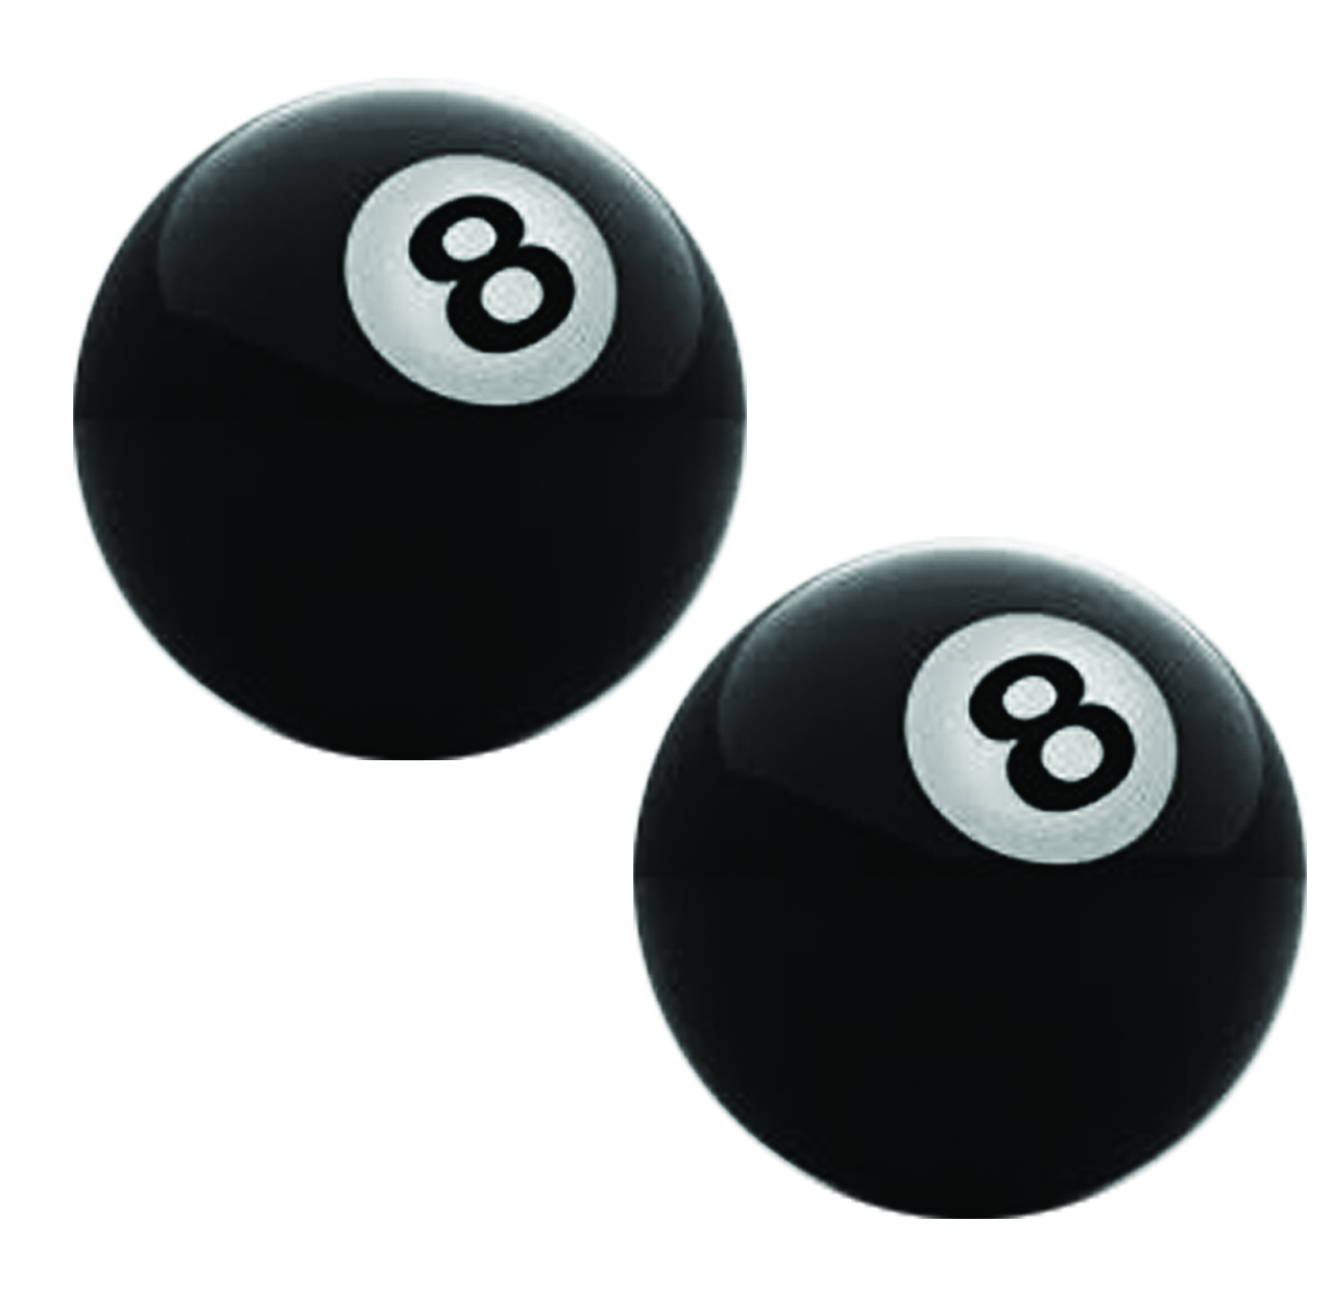 8 Ball Door Lock Knobs